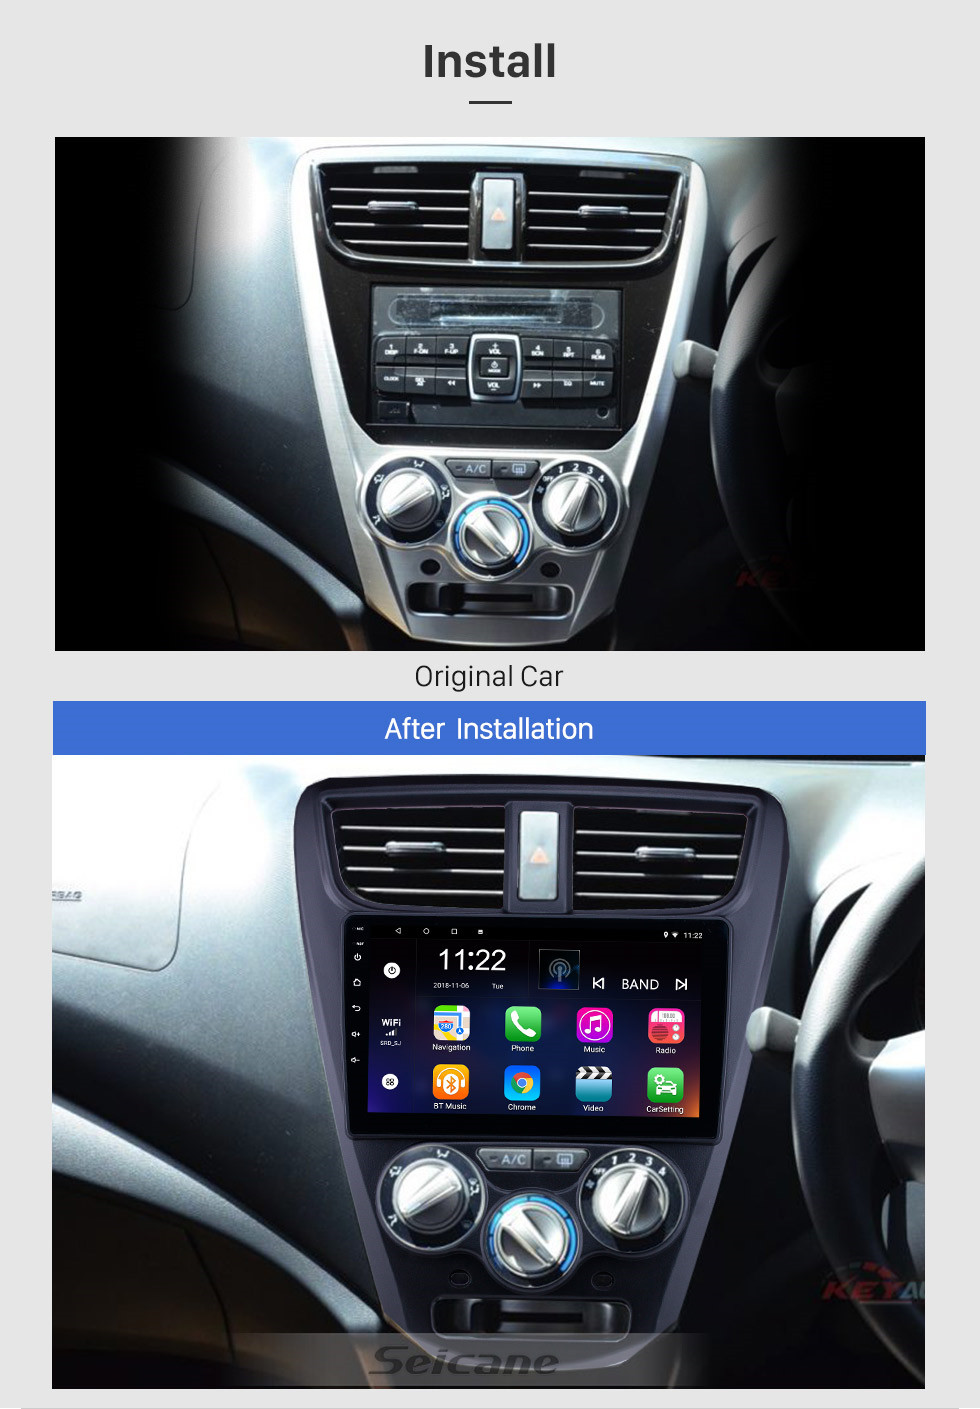 Seicane OEM 9 inch Android 10.0 Radio for 2015 Perodua Axia Bluetooth WIFI HD Touchscreen GPS Navigation support Carplay DVR OBD Rearview camera